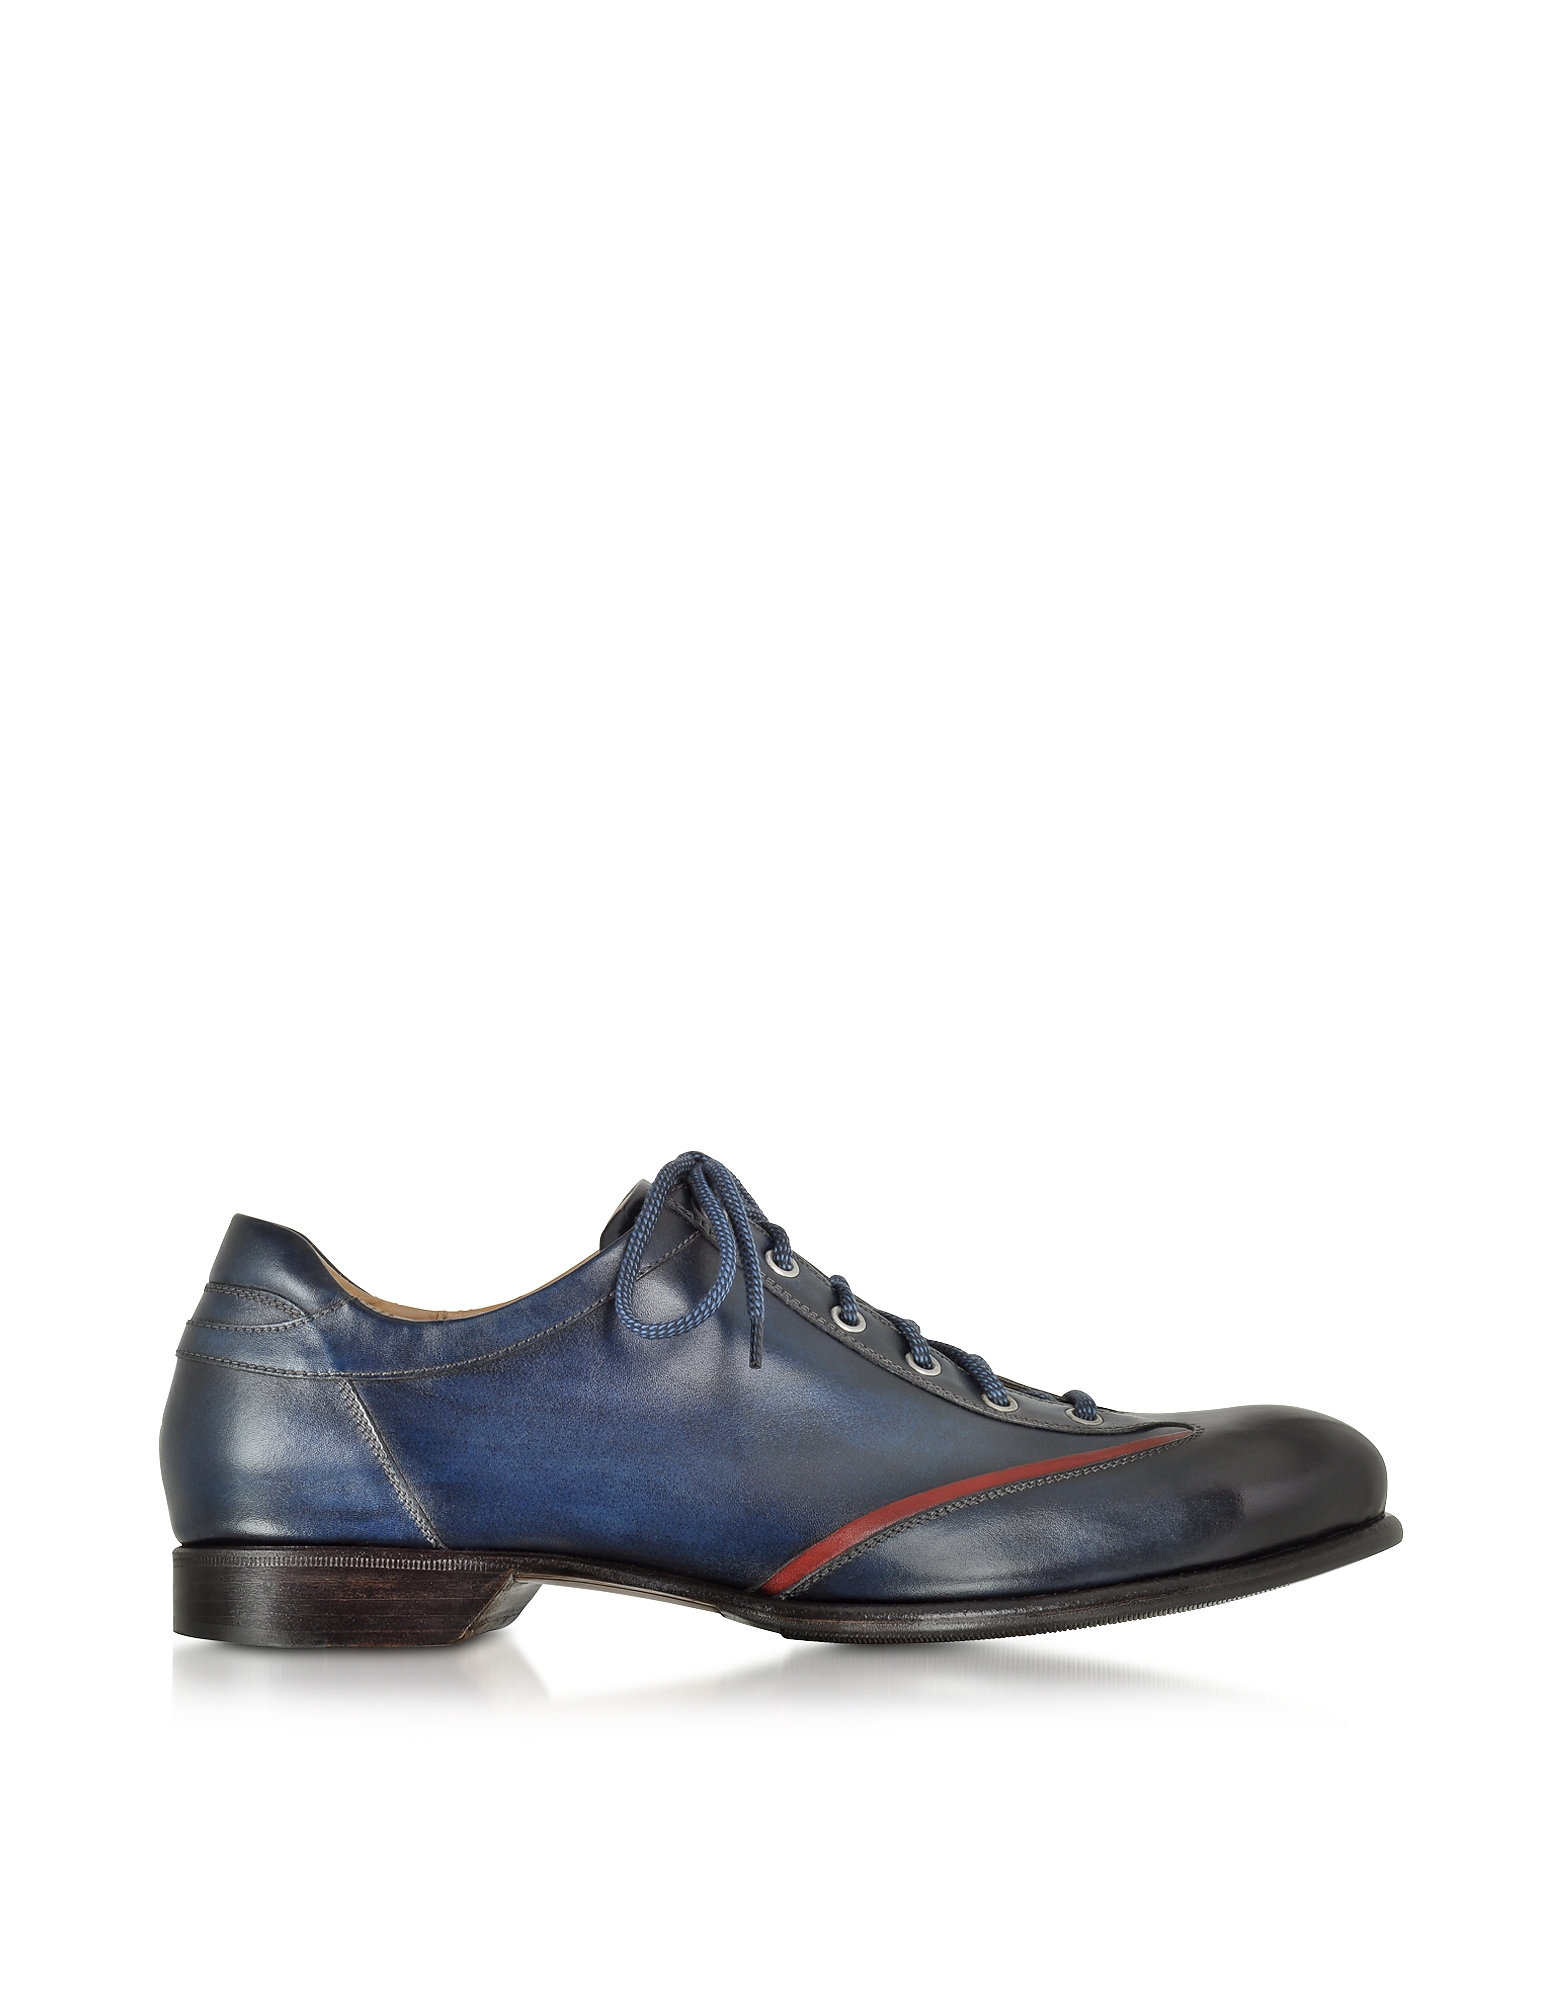 Forzieri Shoes, Men's Blue Handmade Italian Leather Lace-up Shoes